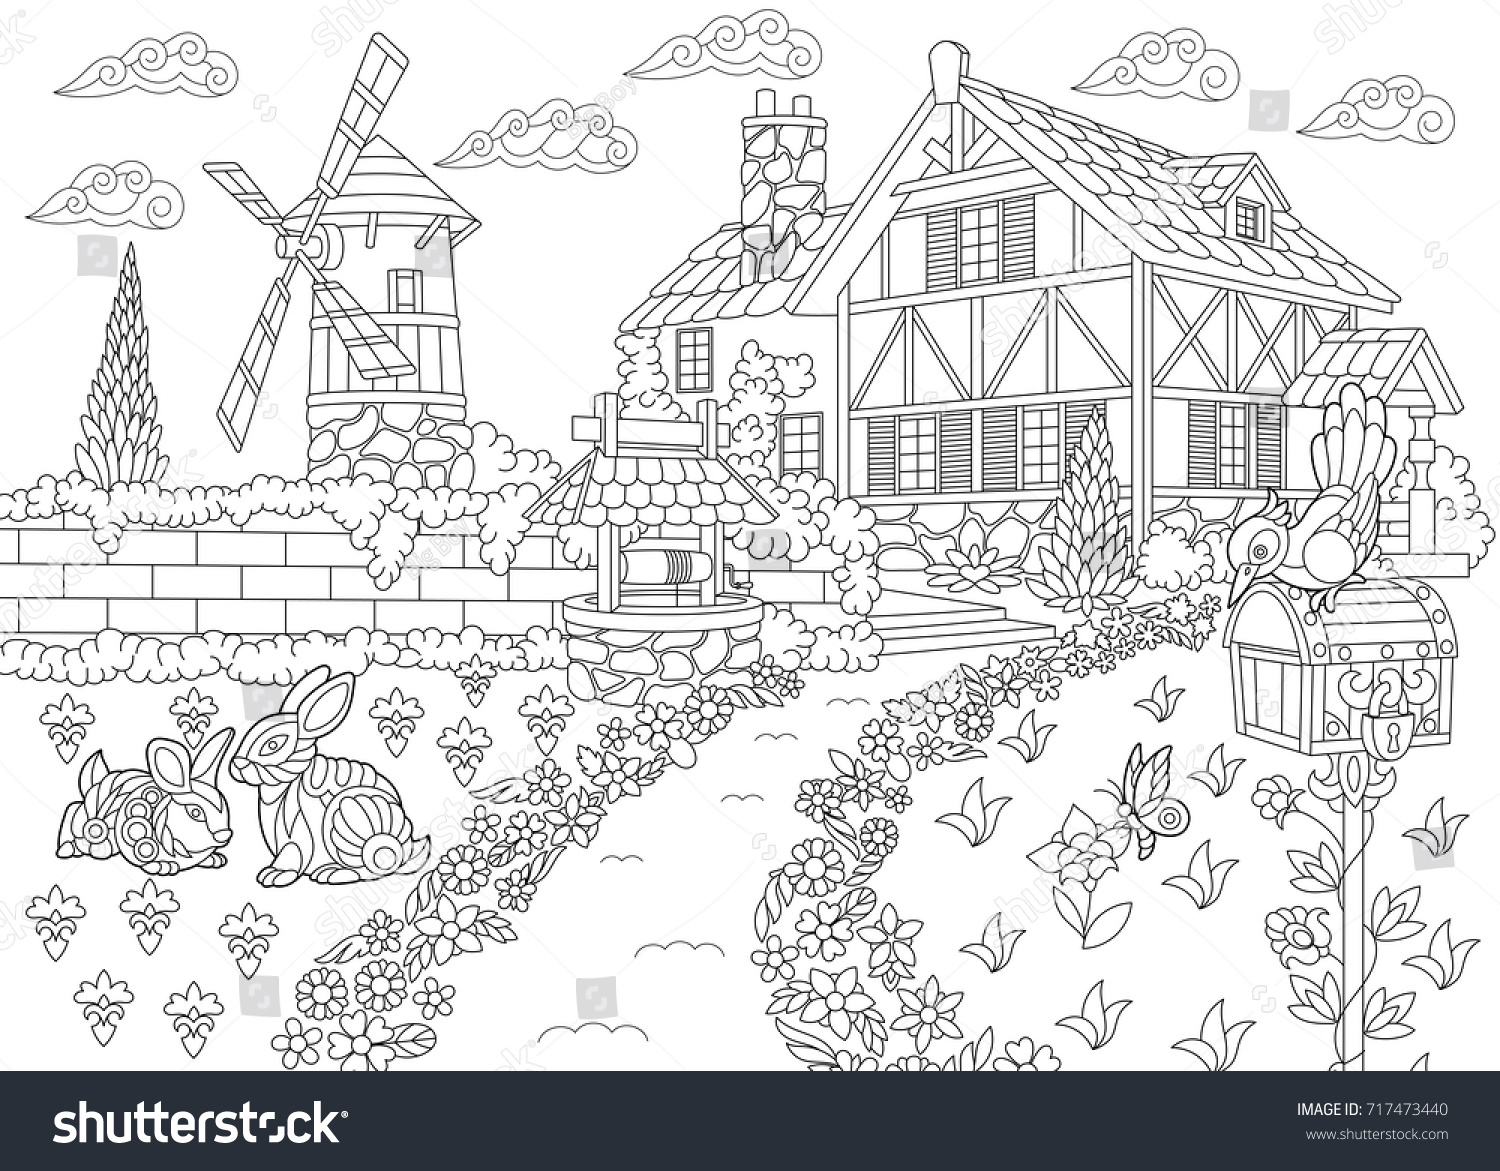 Coloring page of rural landscape farm house windmill water well mail box